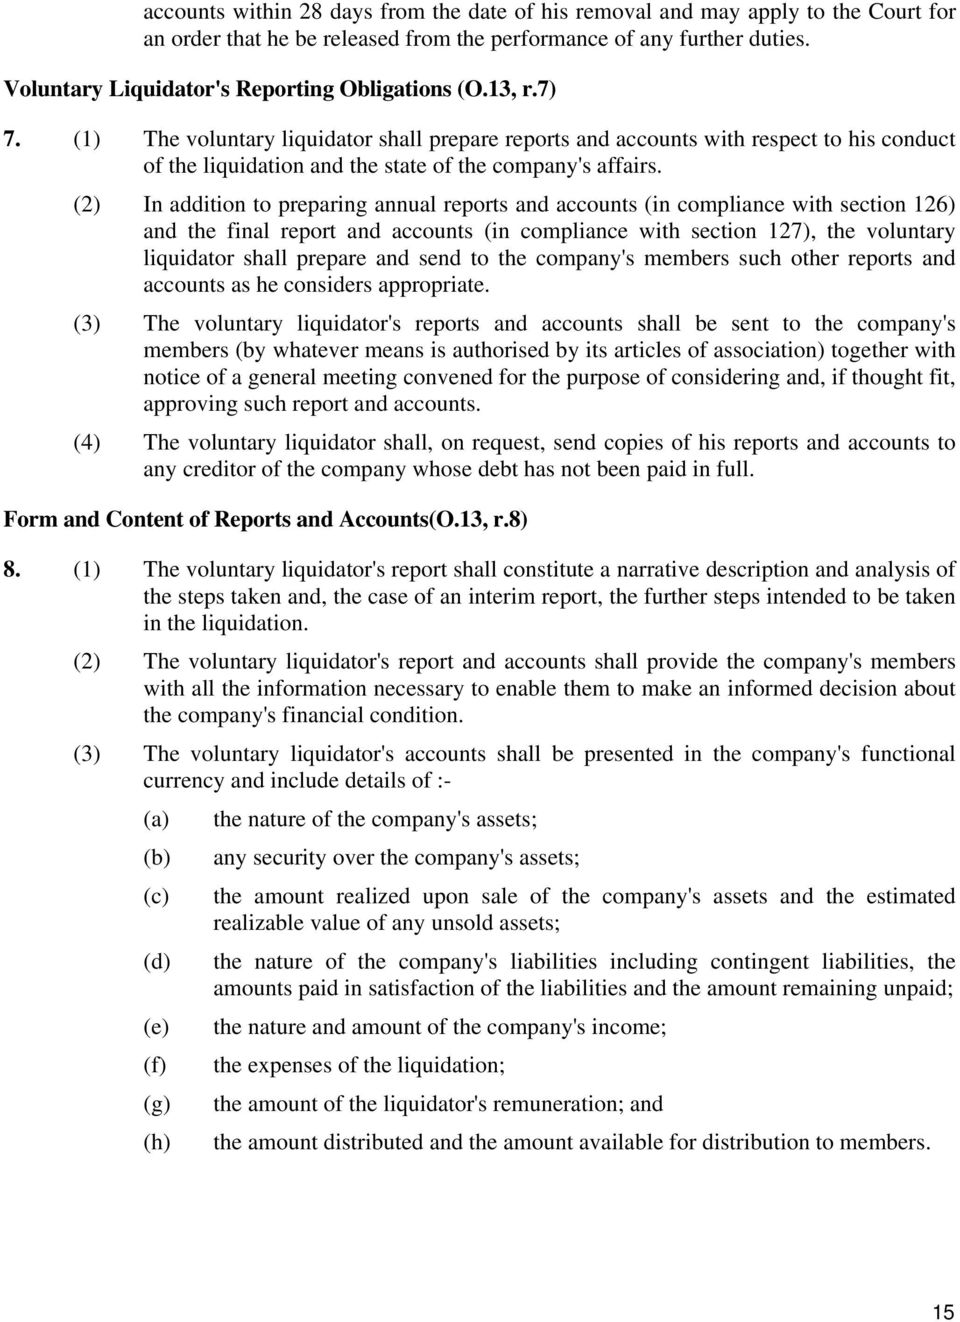 (1) The voluntary liquidator shall prepare reports and accounts with respect to his conduct of the liquidation and the state of the company's affairs.